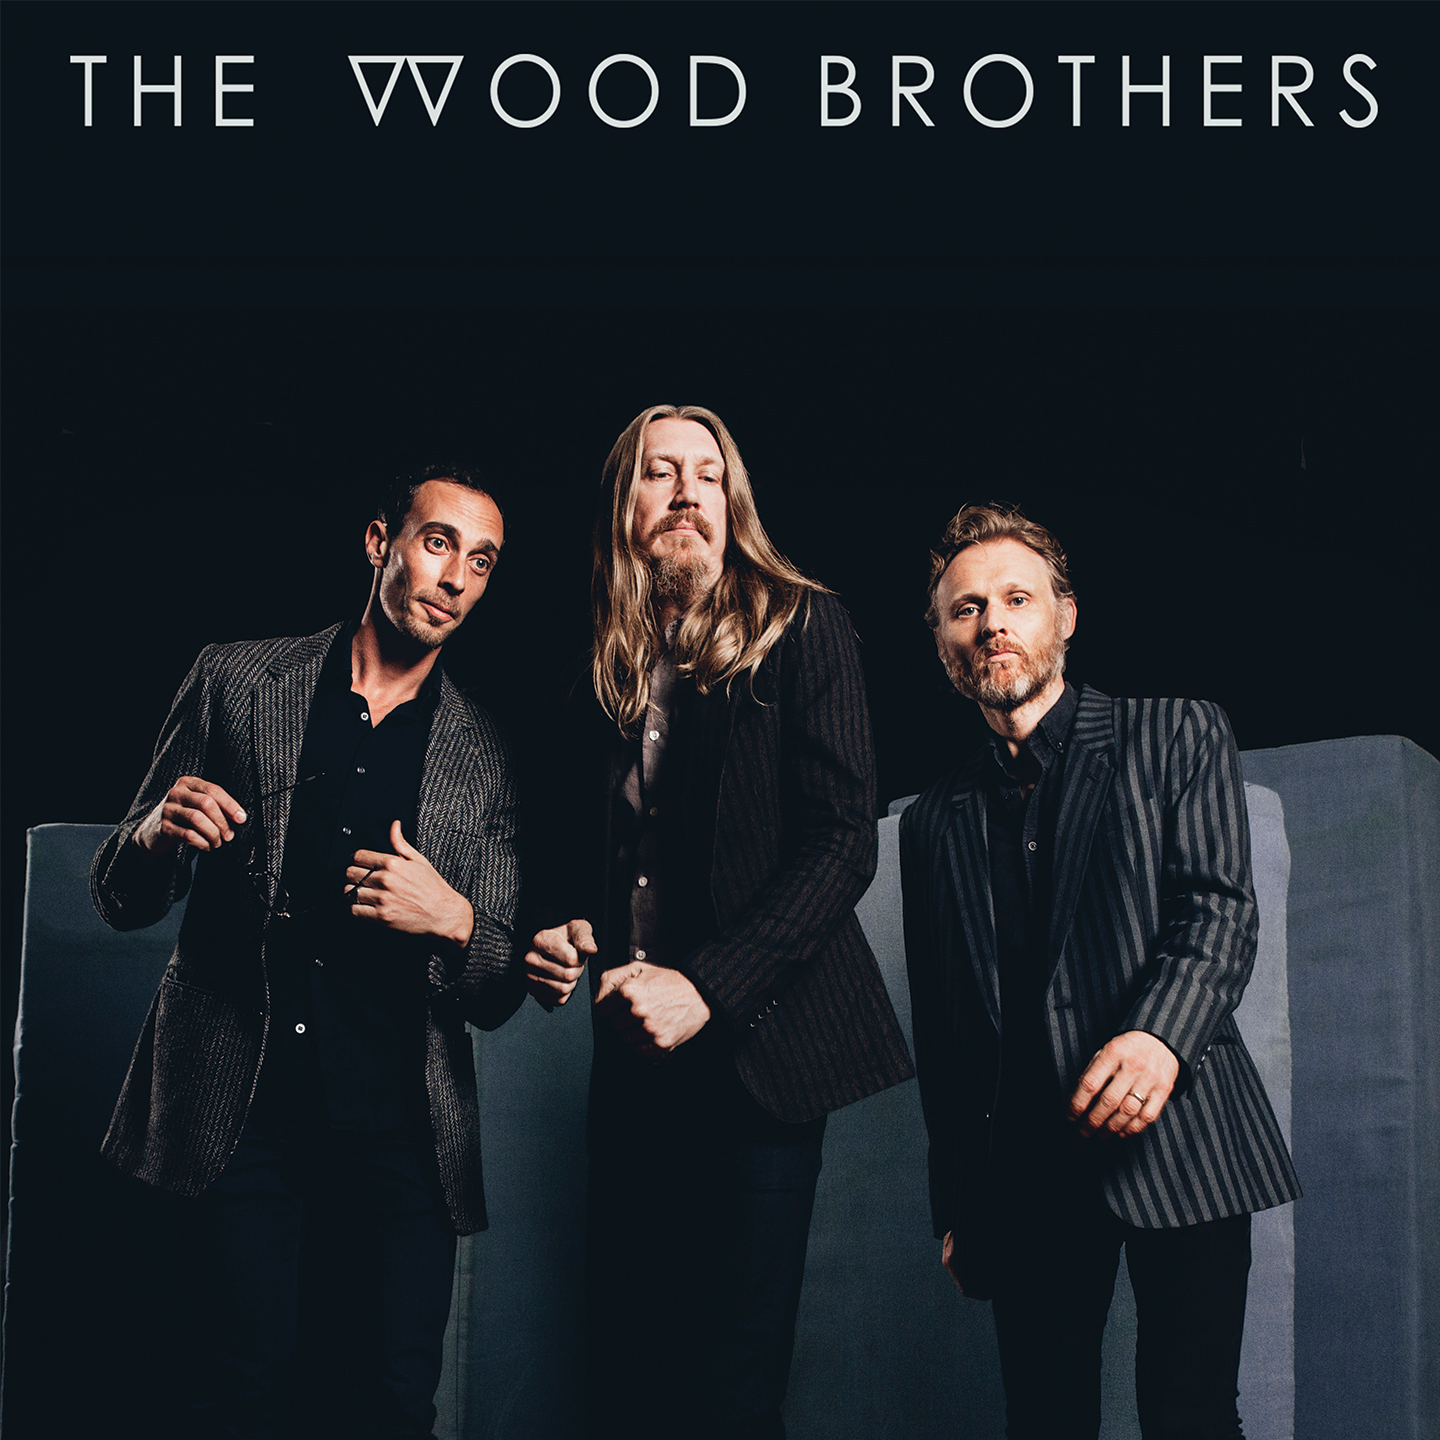 The Wood Brothers @ Knight Theater at Levine Center for the Arts